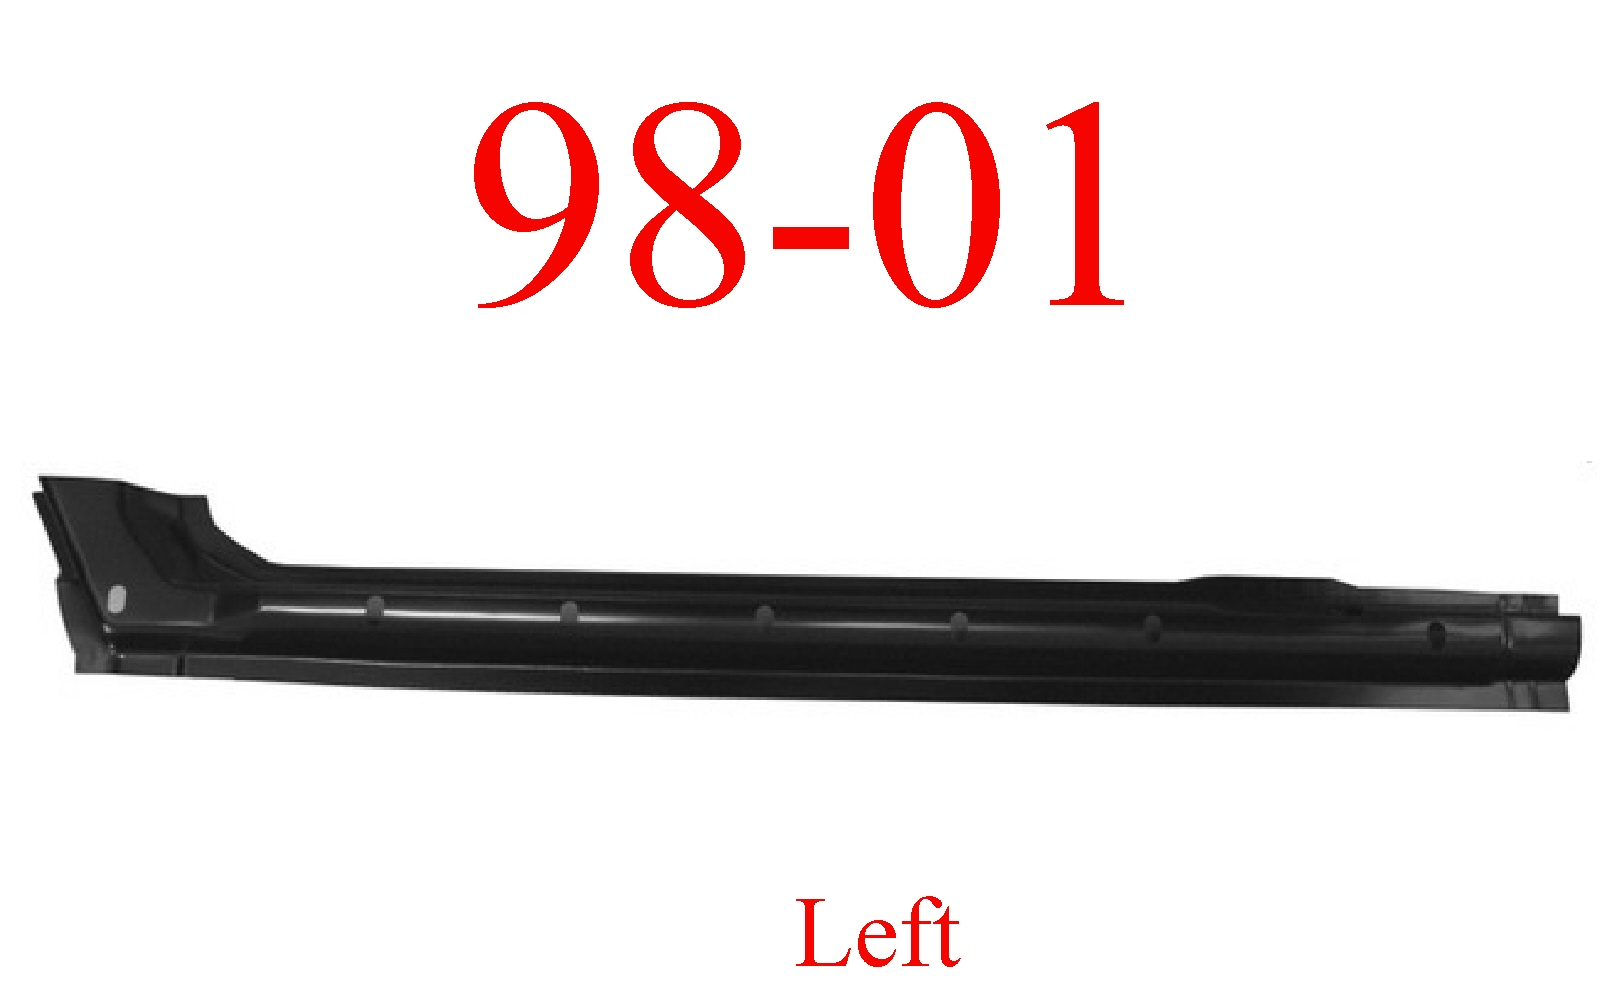 98 01 Dodge Left Quad Cab Extended Rocker Panel